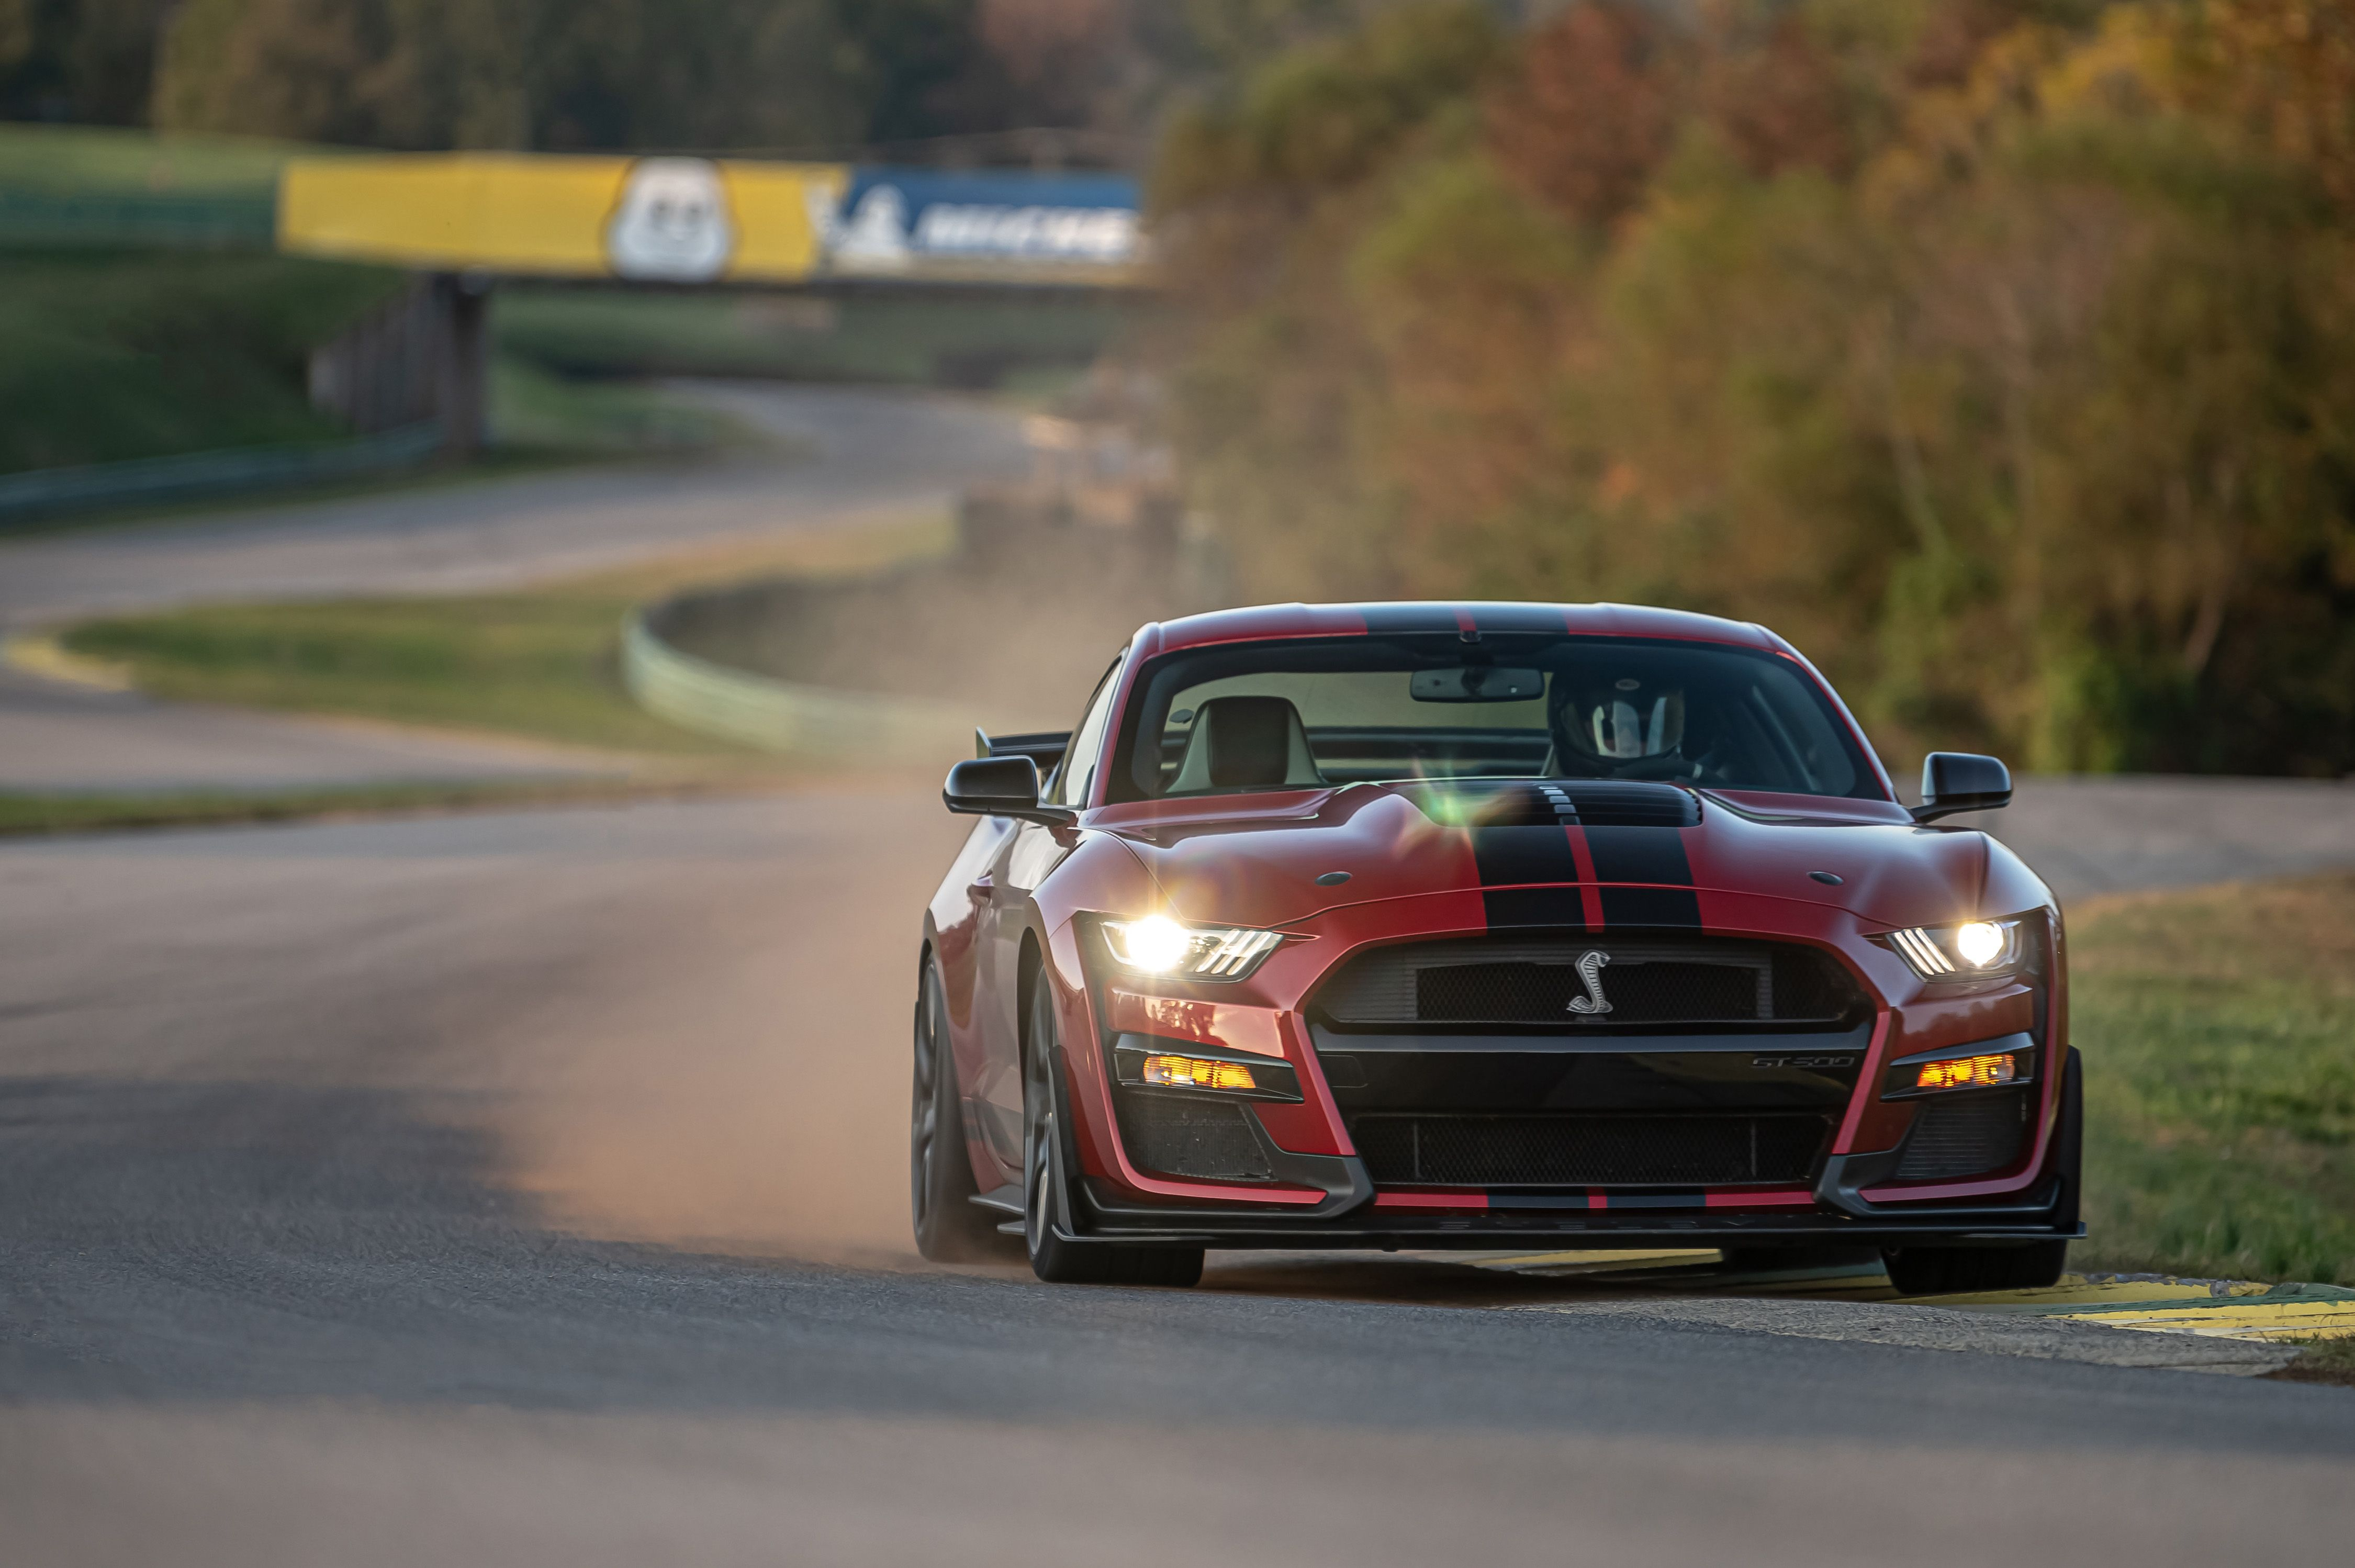 2020 Ford Mustang Shelby GT500 at Lightning Lap 2021